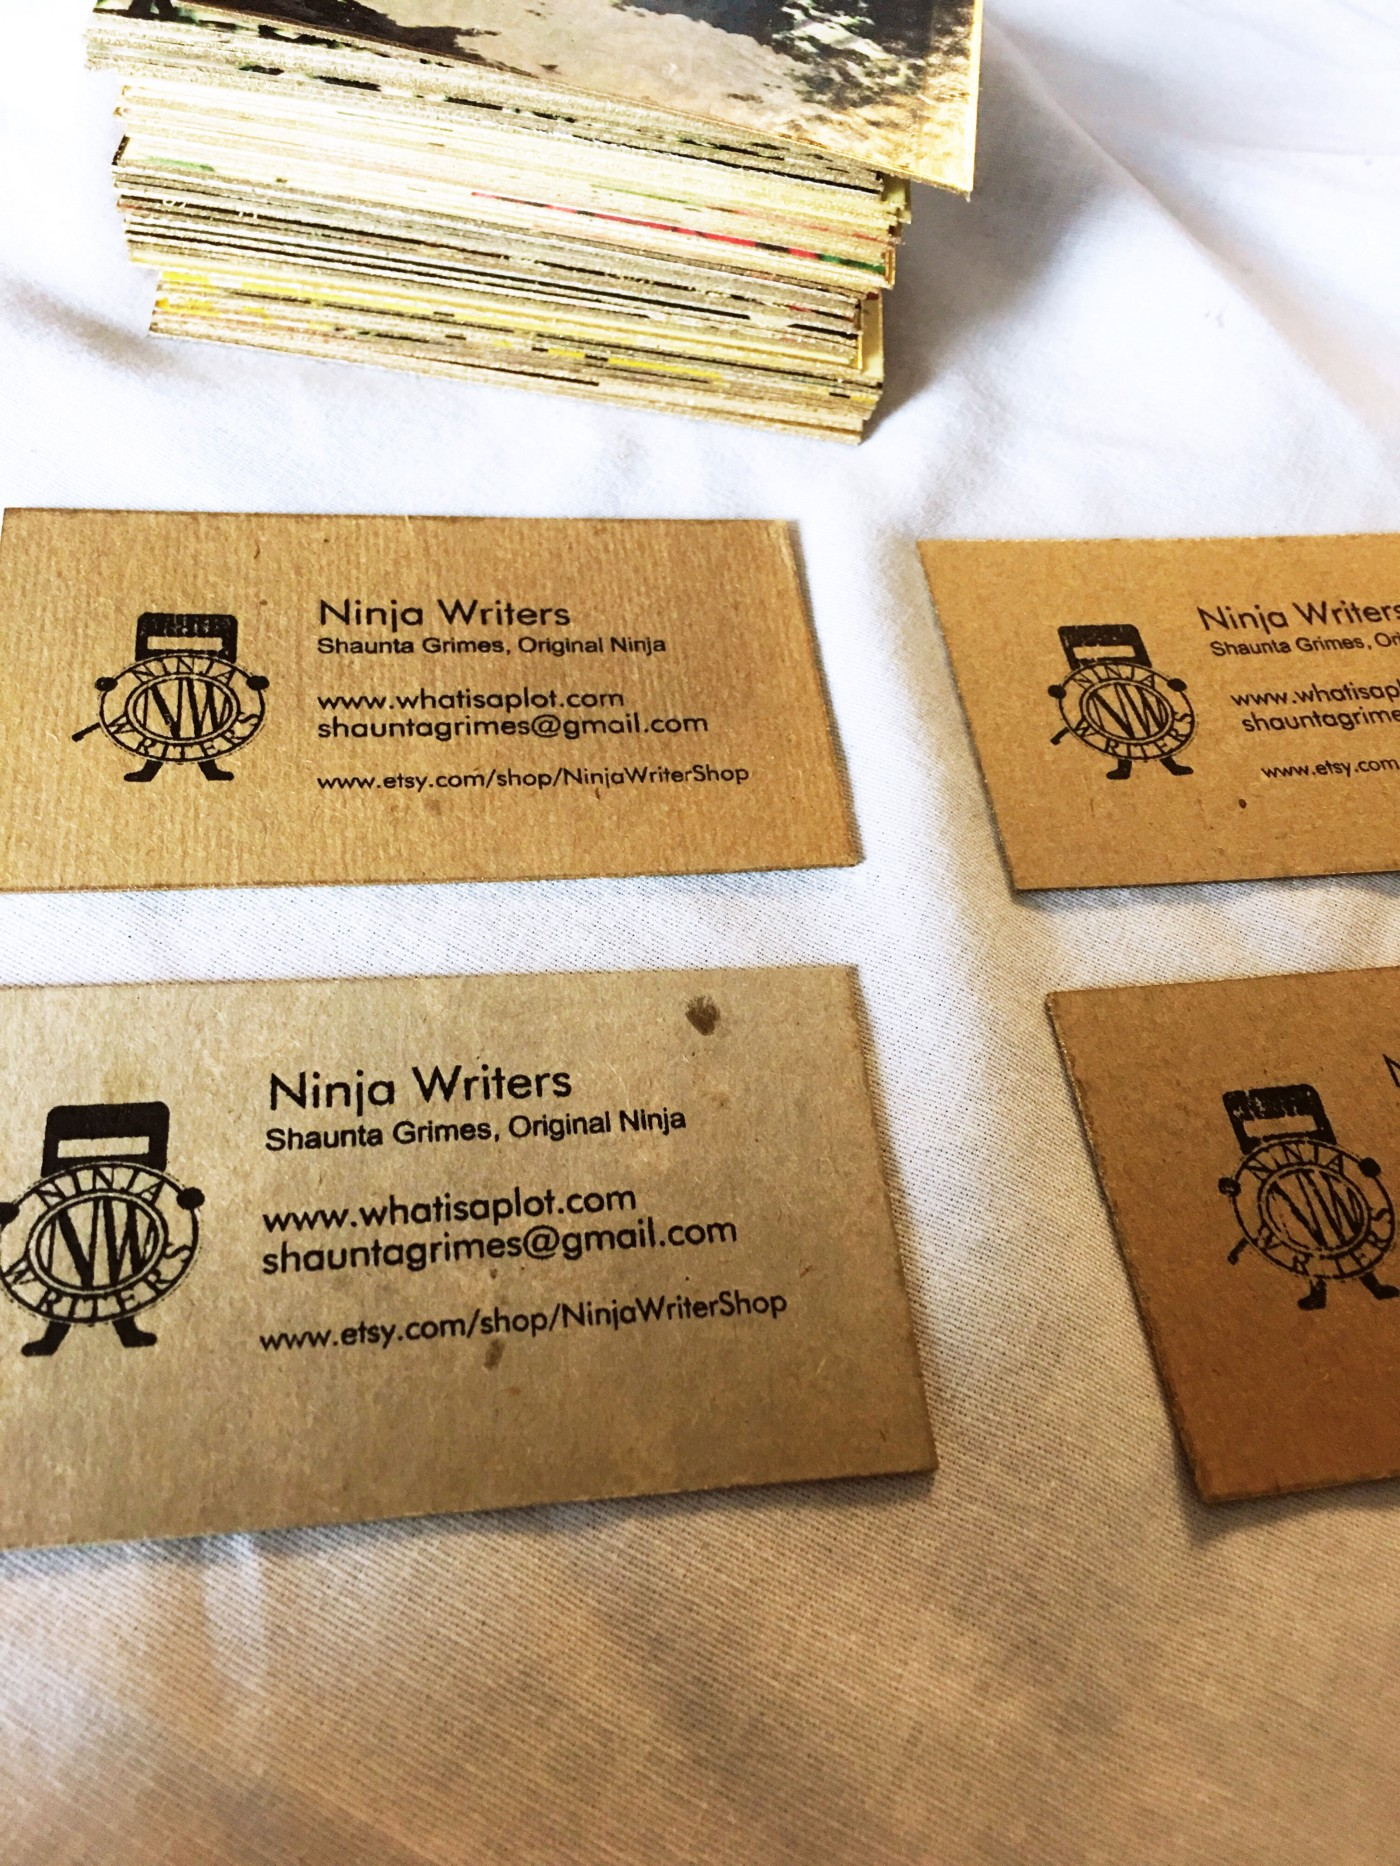 How to Make Killer Business Cards from Recycled Record Covers